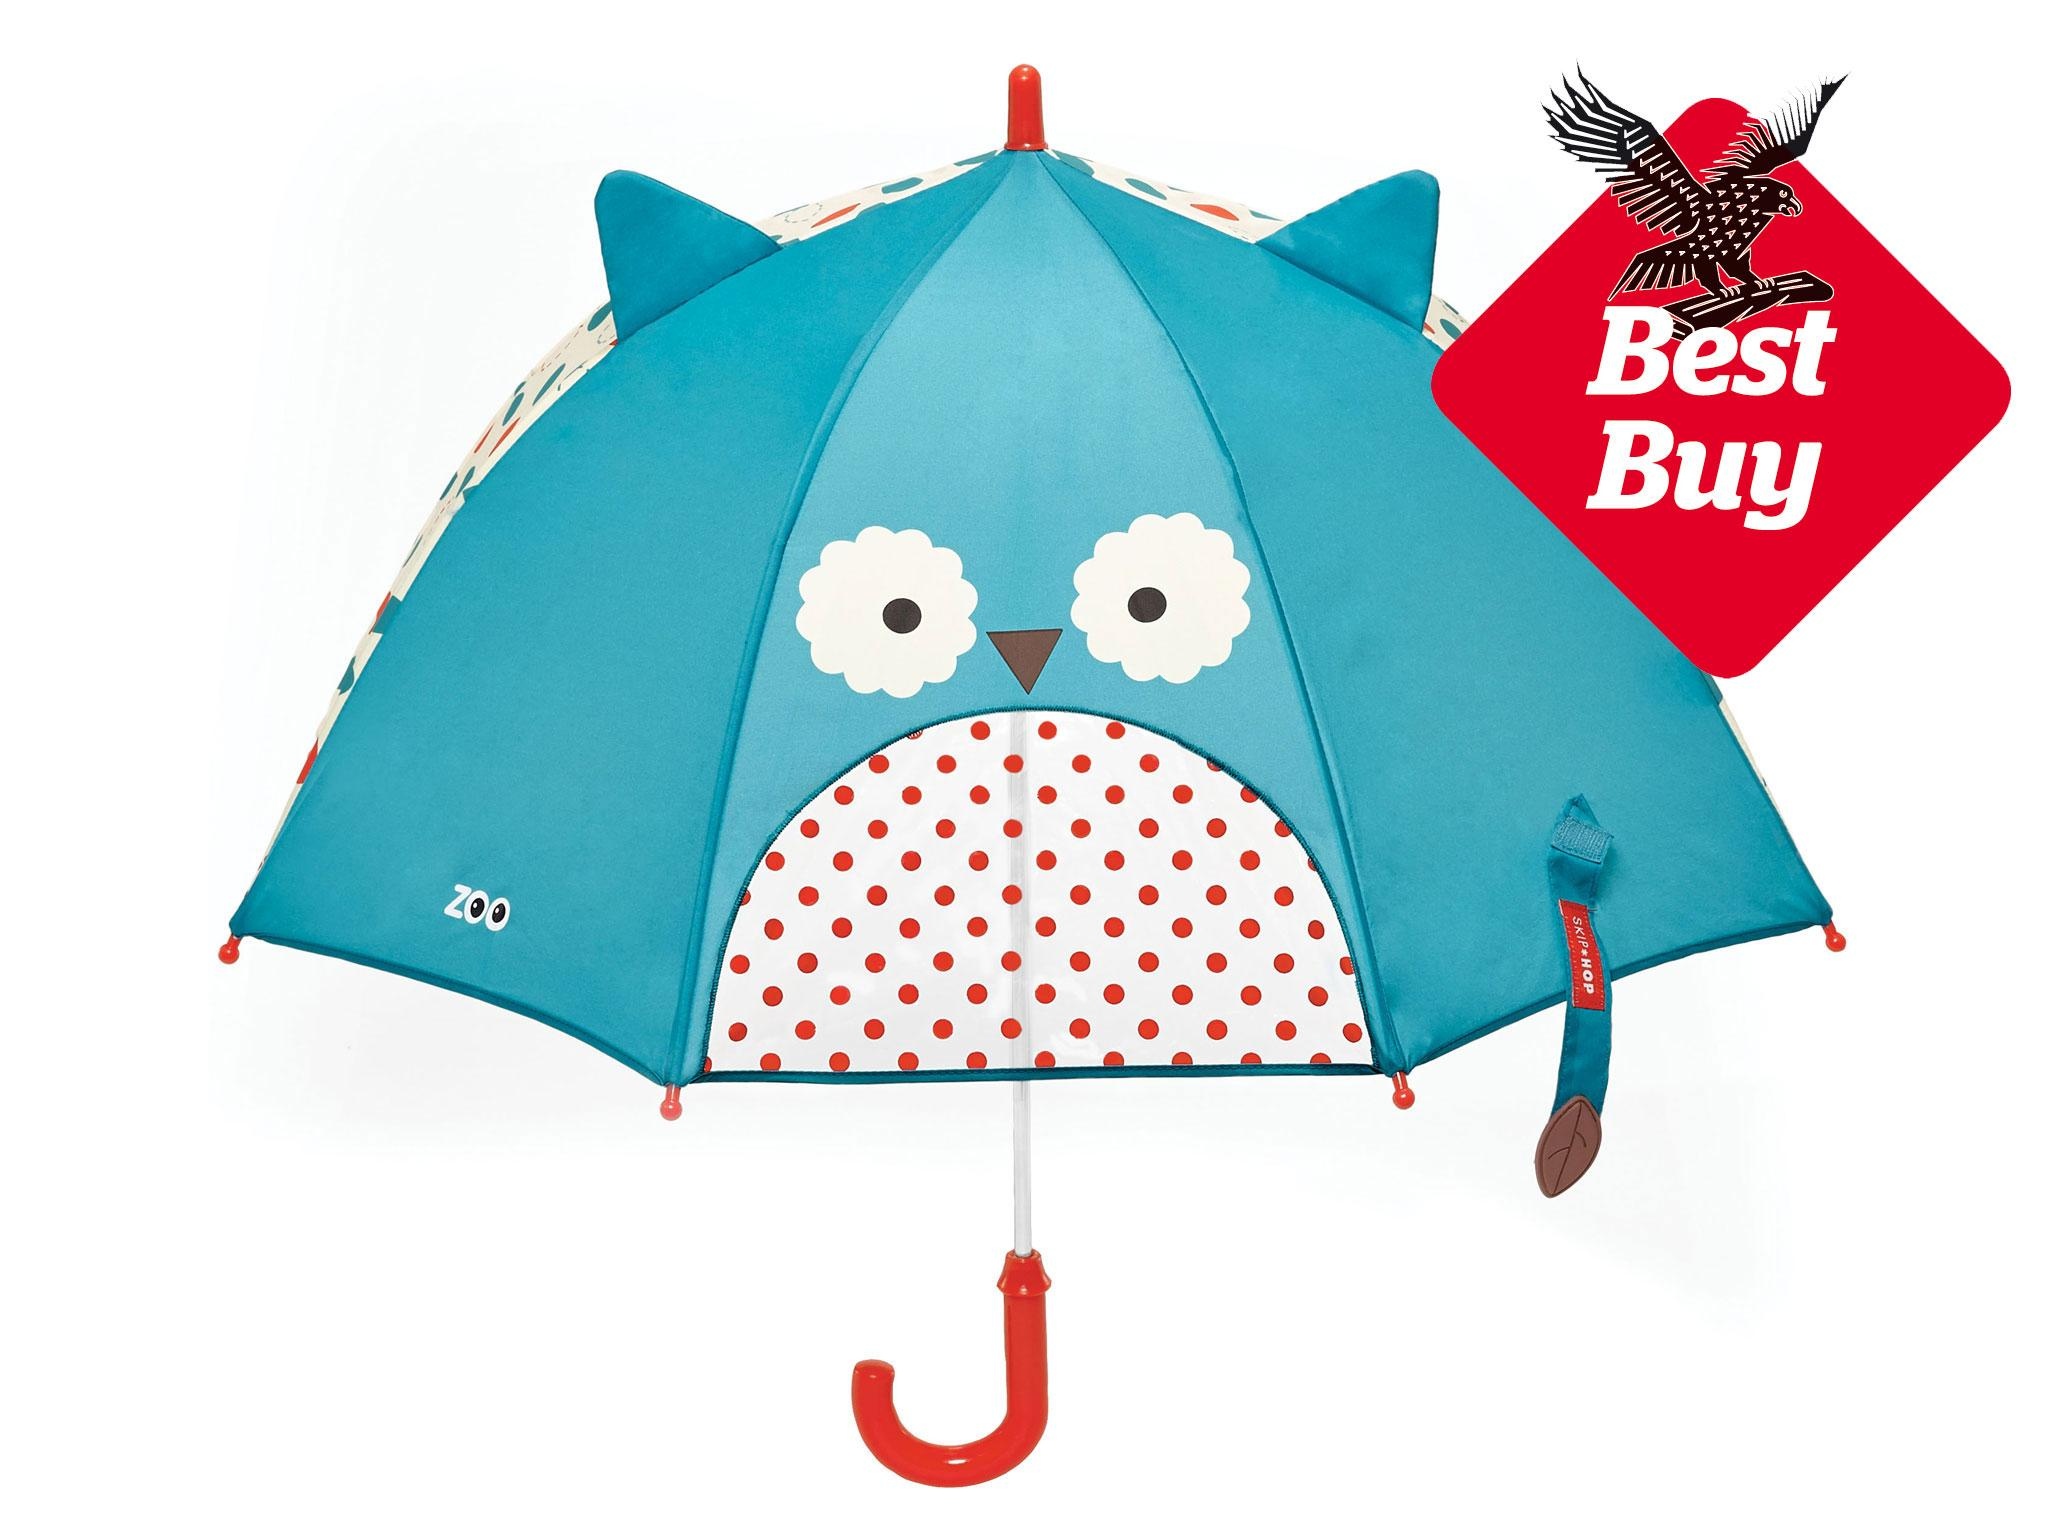 f25034b1c0efa The Skip Hop range of children's umbrellas is so endearing that they will  make you smile whatever the weather. Choose between ladybird, monkey, bee,  ...